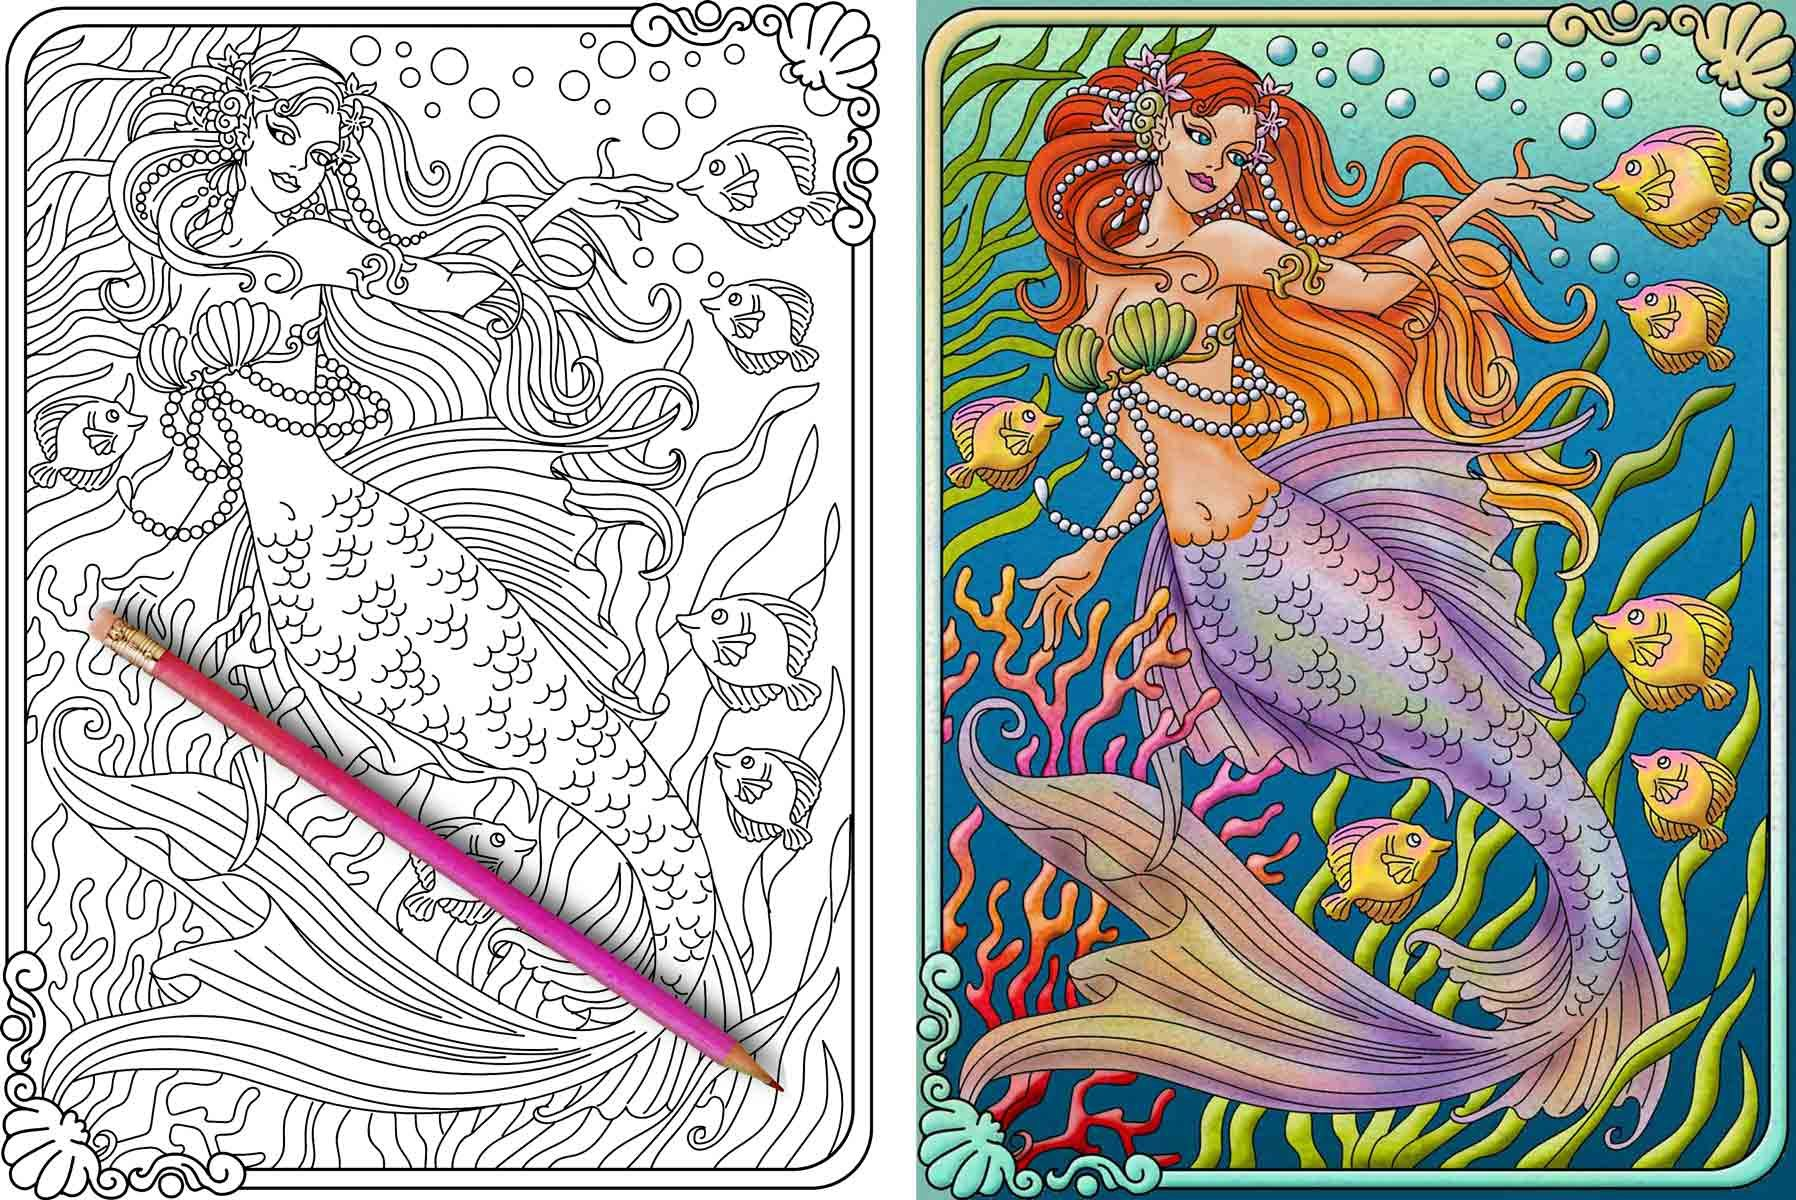 Mermaid Coloring Page Before And After Mermaid Coloring Book Mermaid Coloring Pages Beautiful Mermaids [ 1200 x 1796 Pixel ]